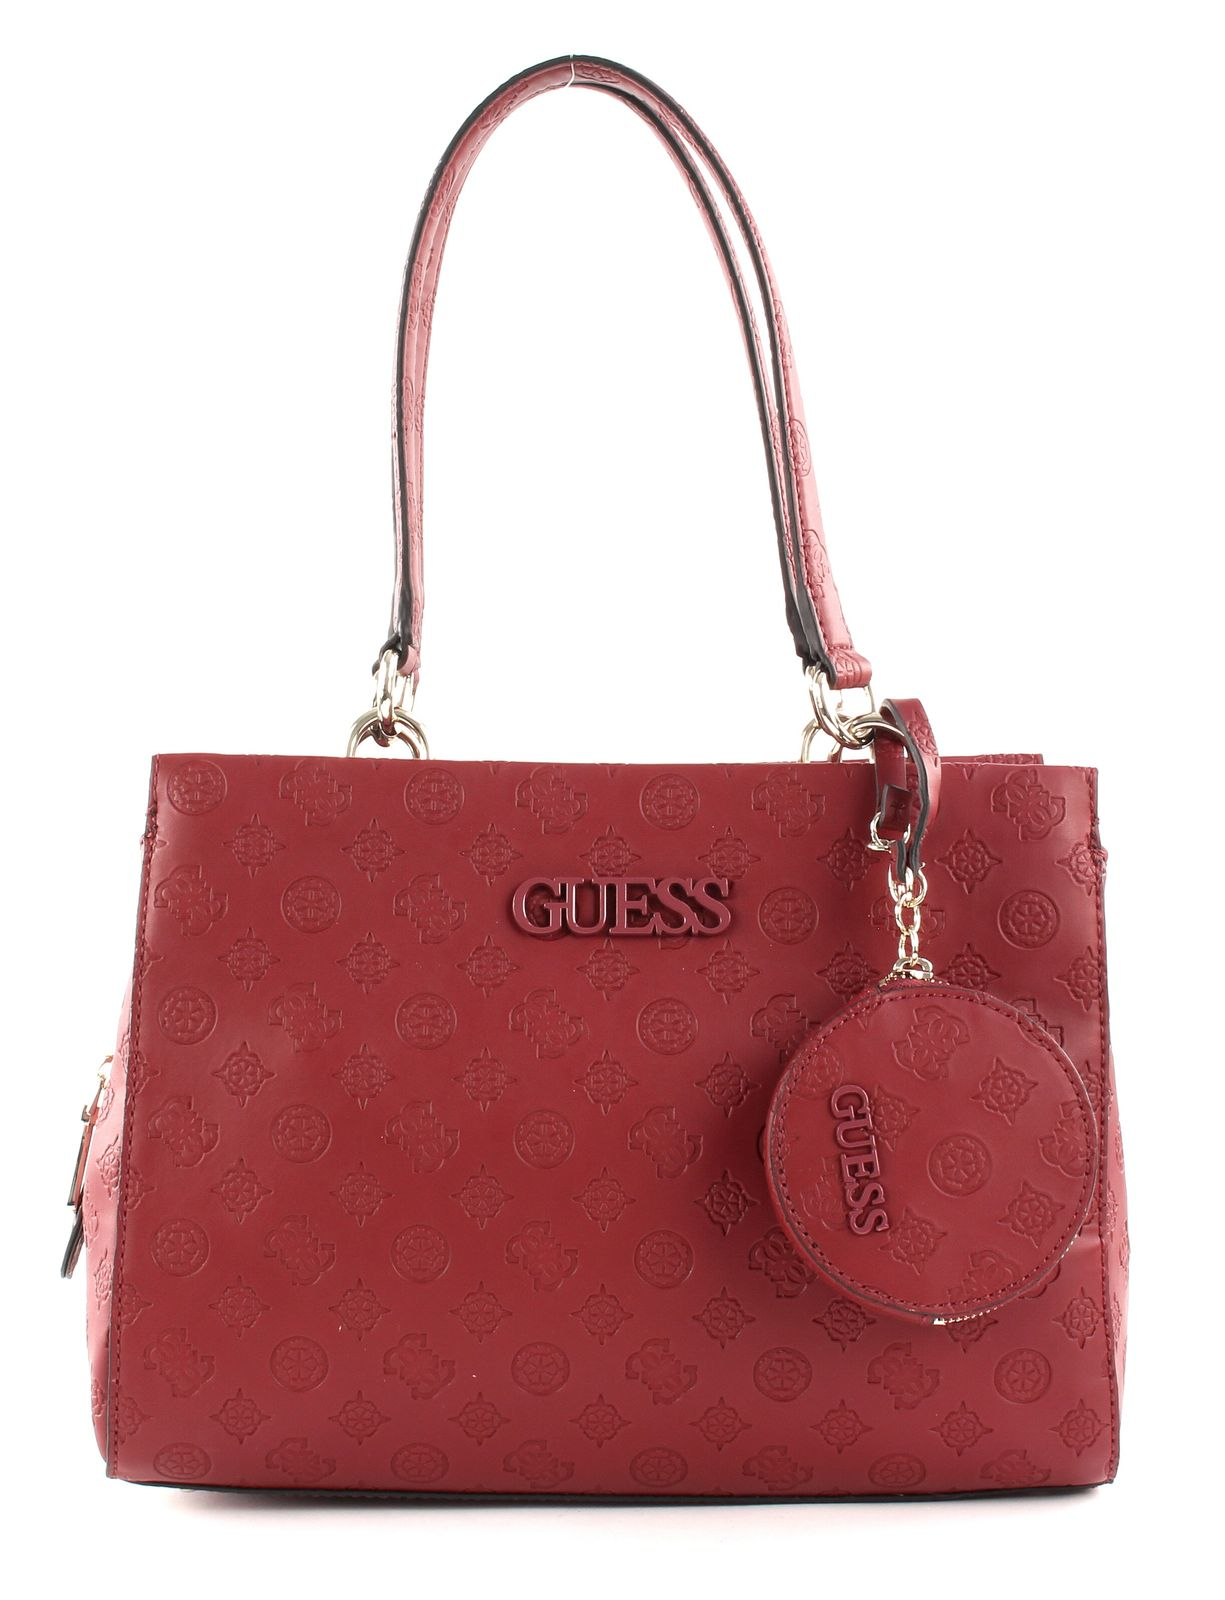 Women's red rucksack Guess Janelle | Meety